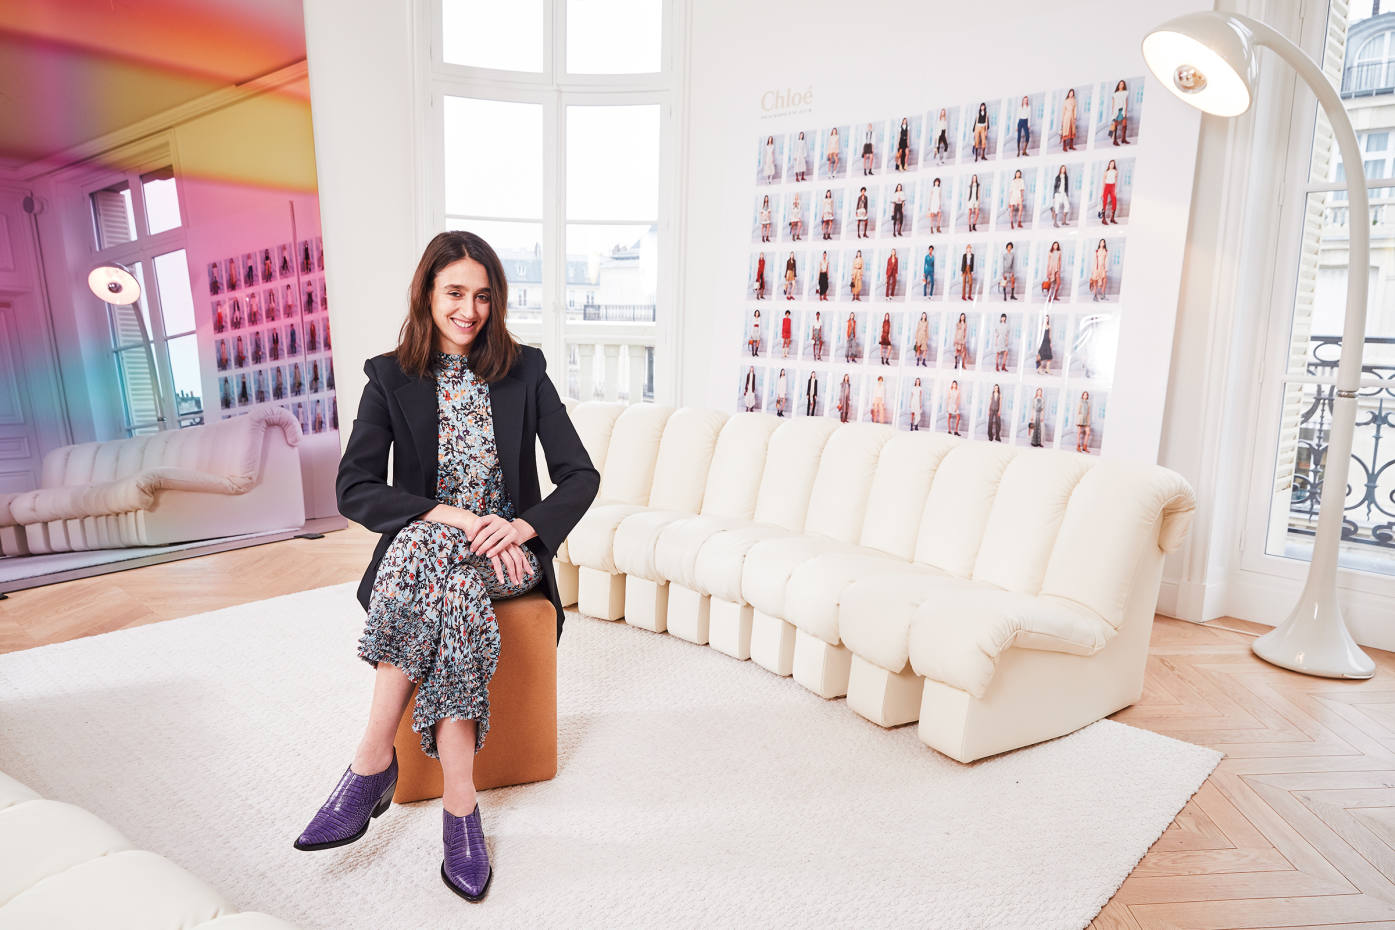 Natacha Ramsay-Levi, Chloé's new creative director, in her Paris office